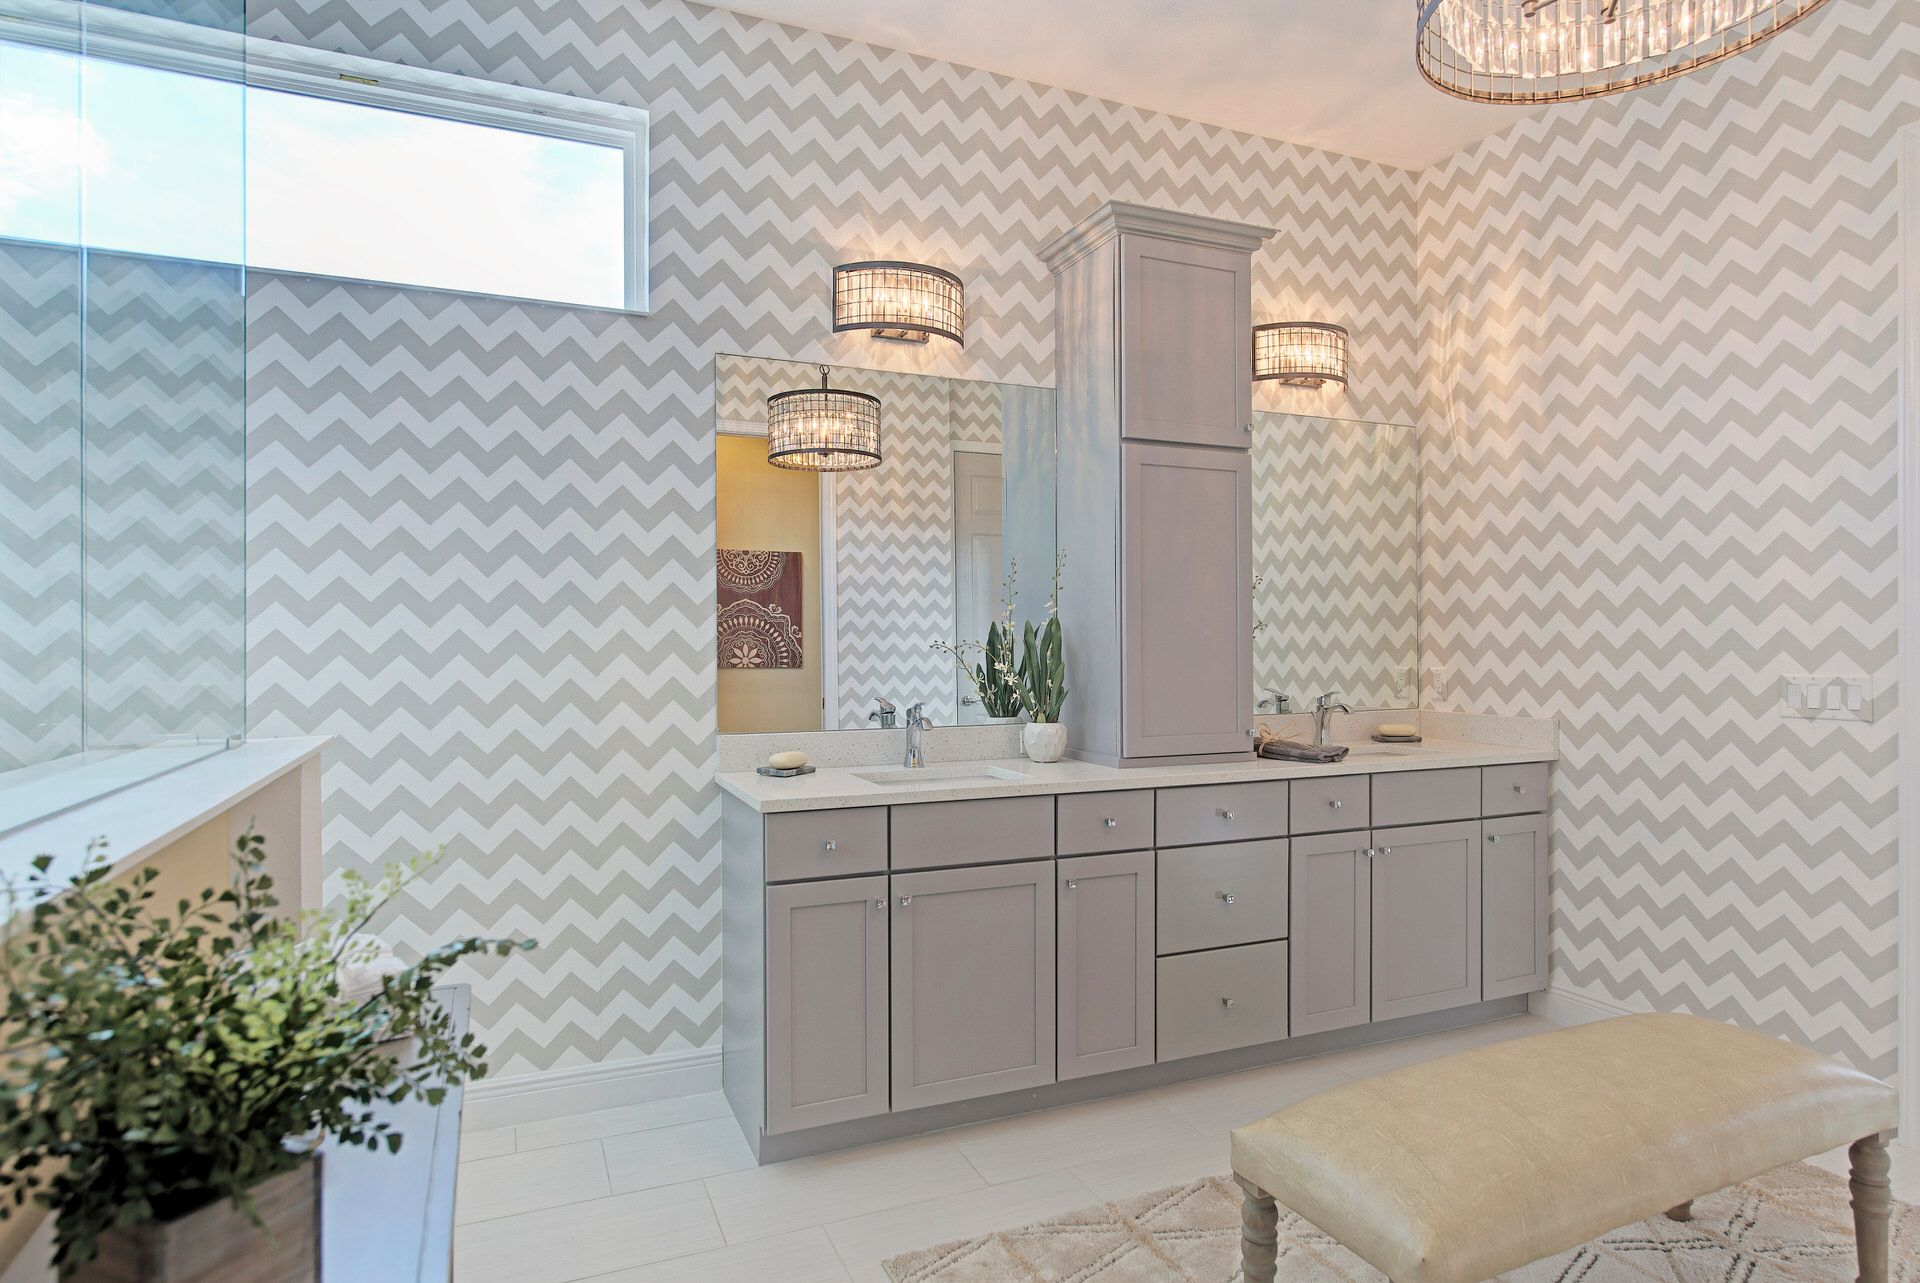 Bathroom featured in the Belize By Medallion Home in Sarasota-Bradenton, FL